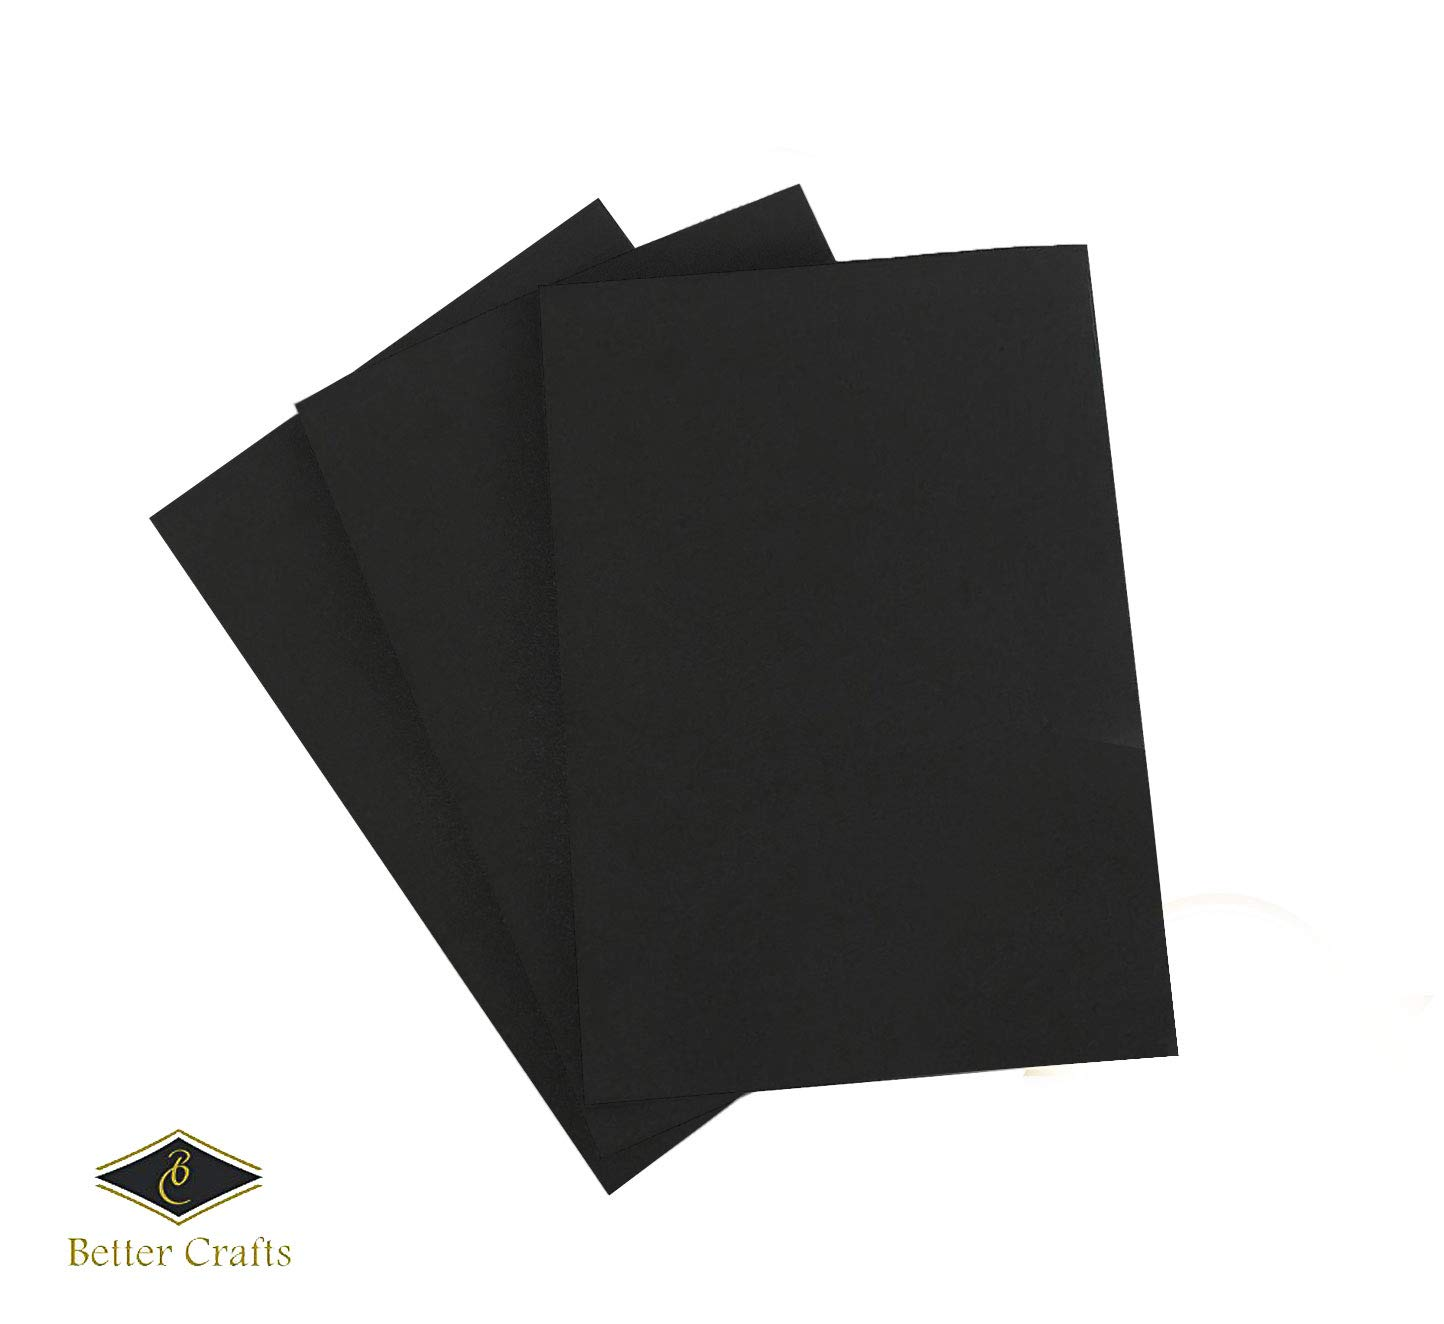 Eva Foam Sheets in Black, 9x12 Inches, 6mm- Extra Thick! Great Craft Foam Paper (30)